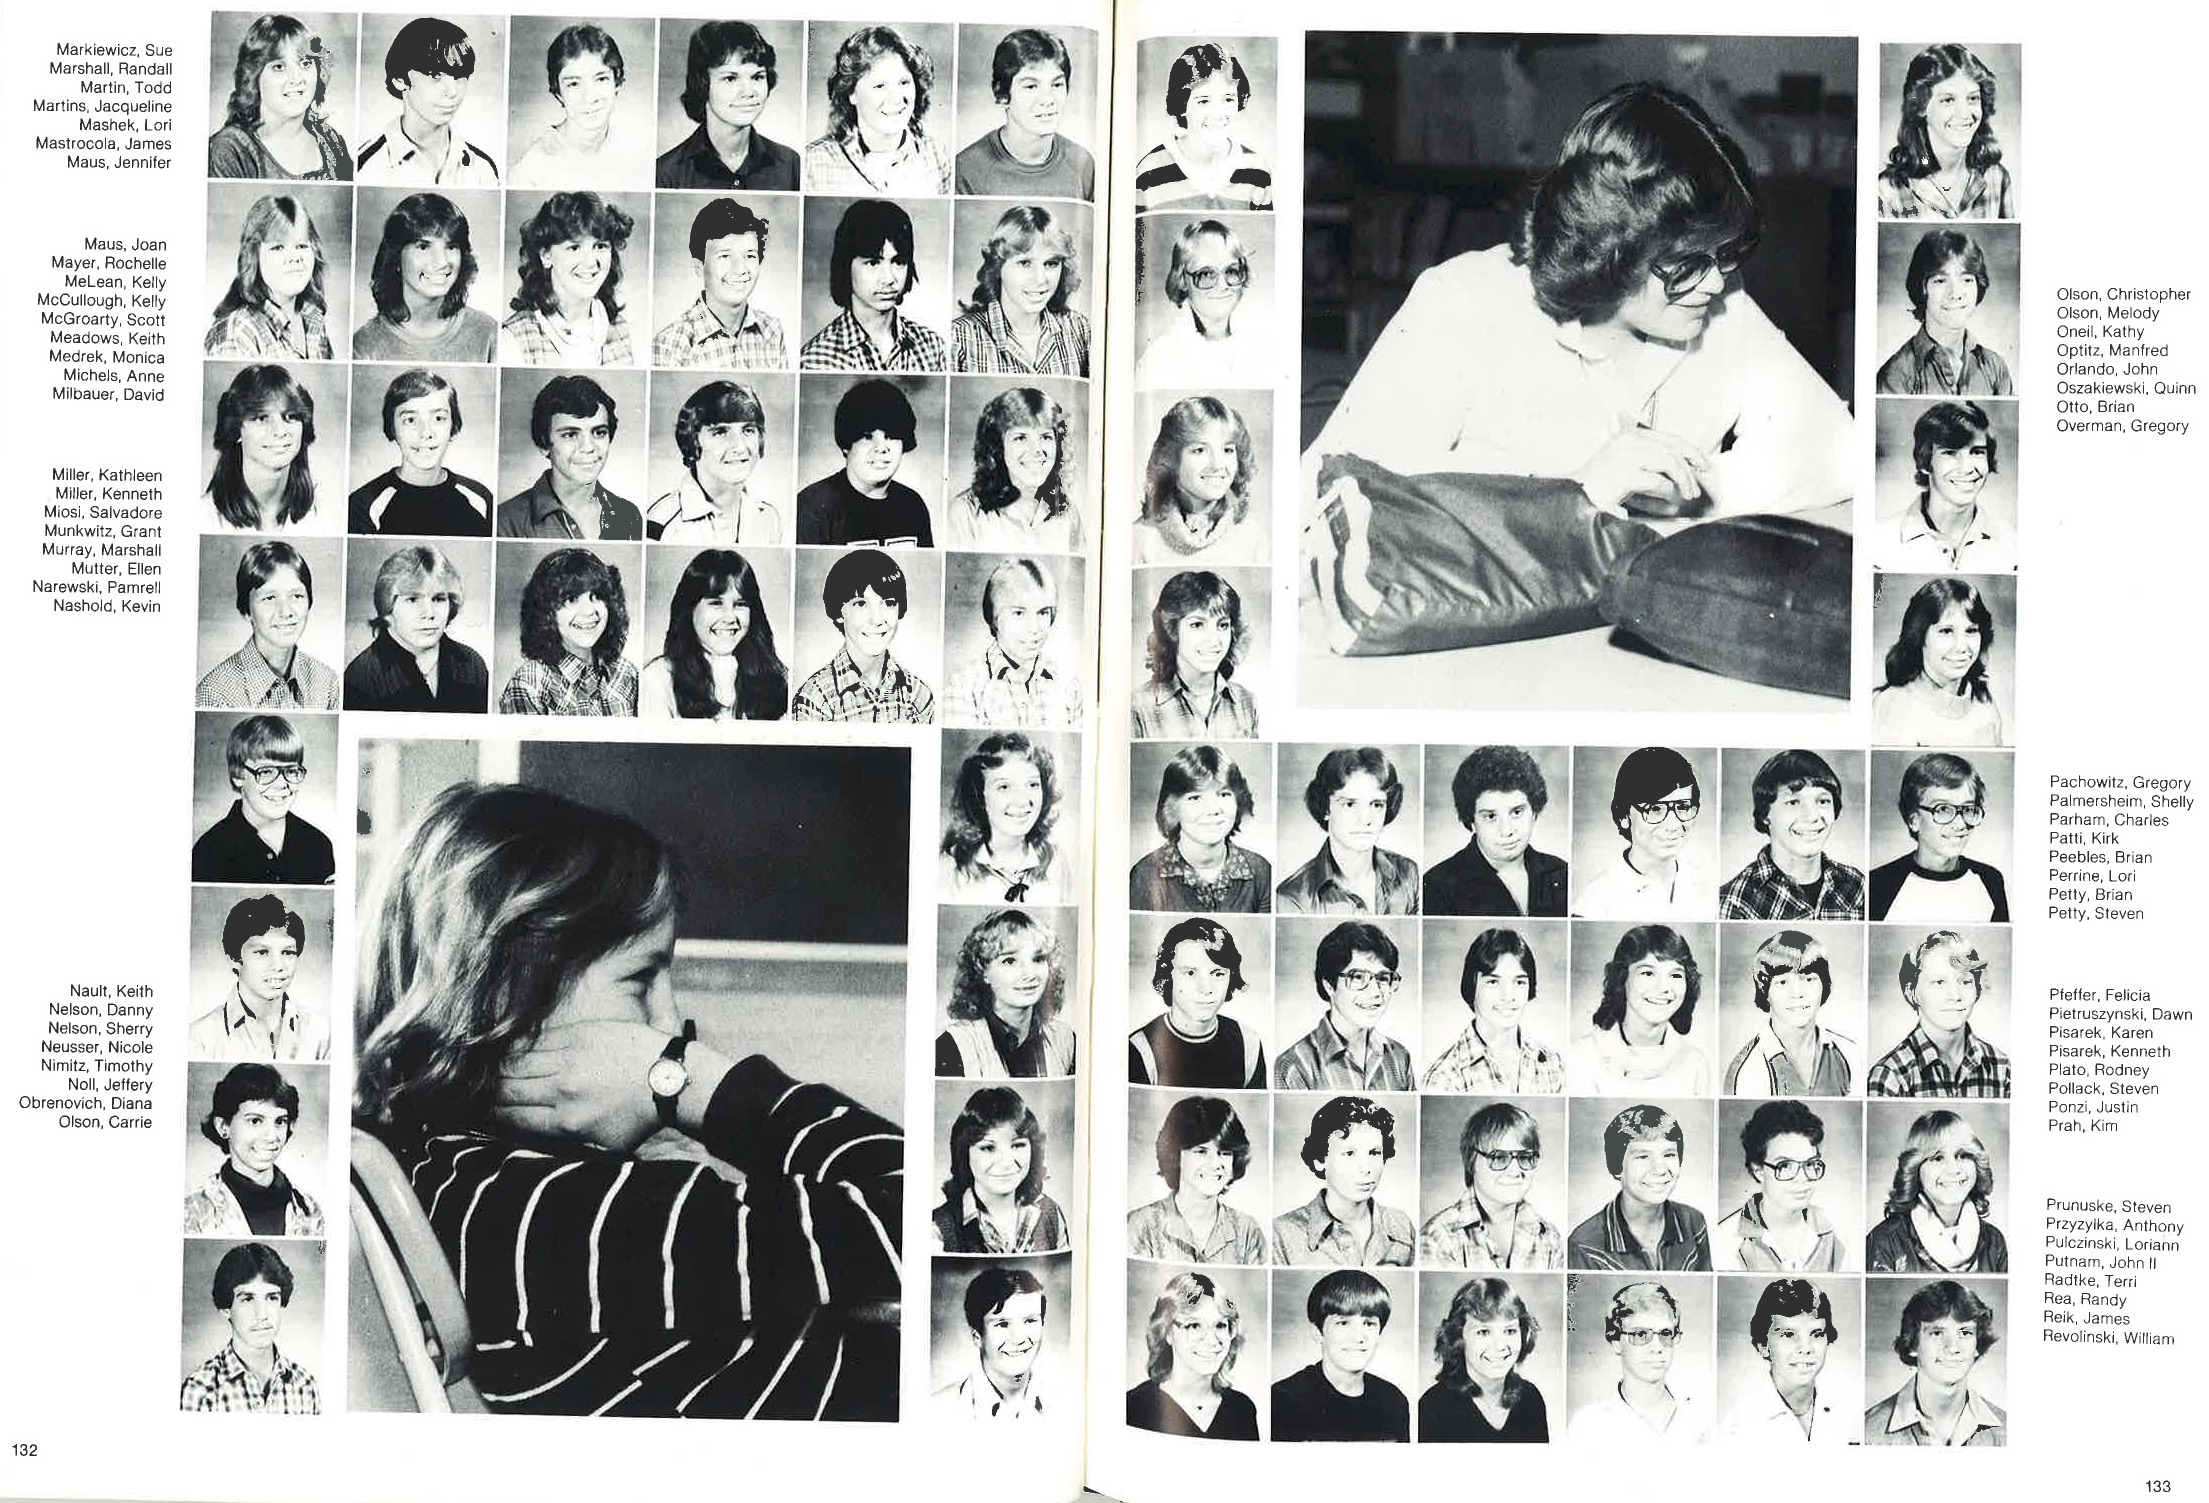 1981_Yearbook_132.jpg